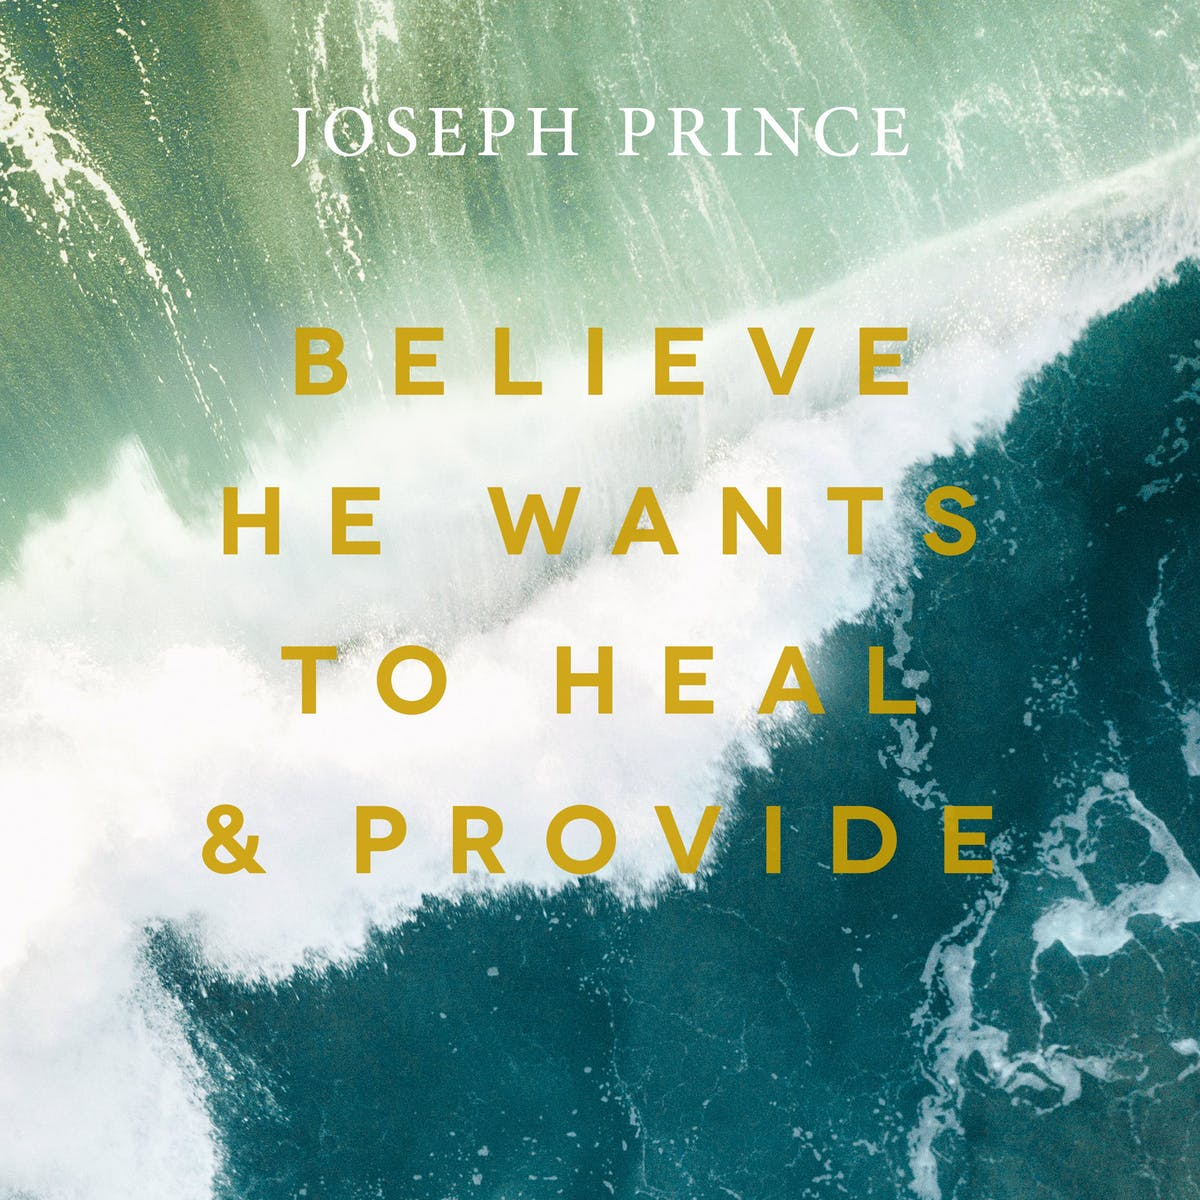 Believe He Wants To Heal And Provide | Official Joseph